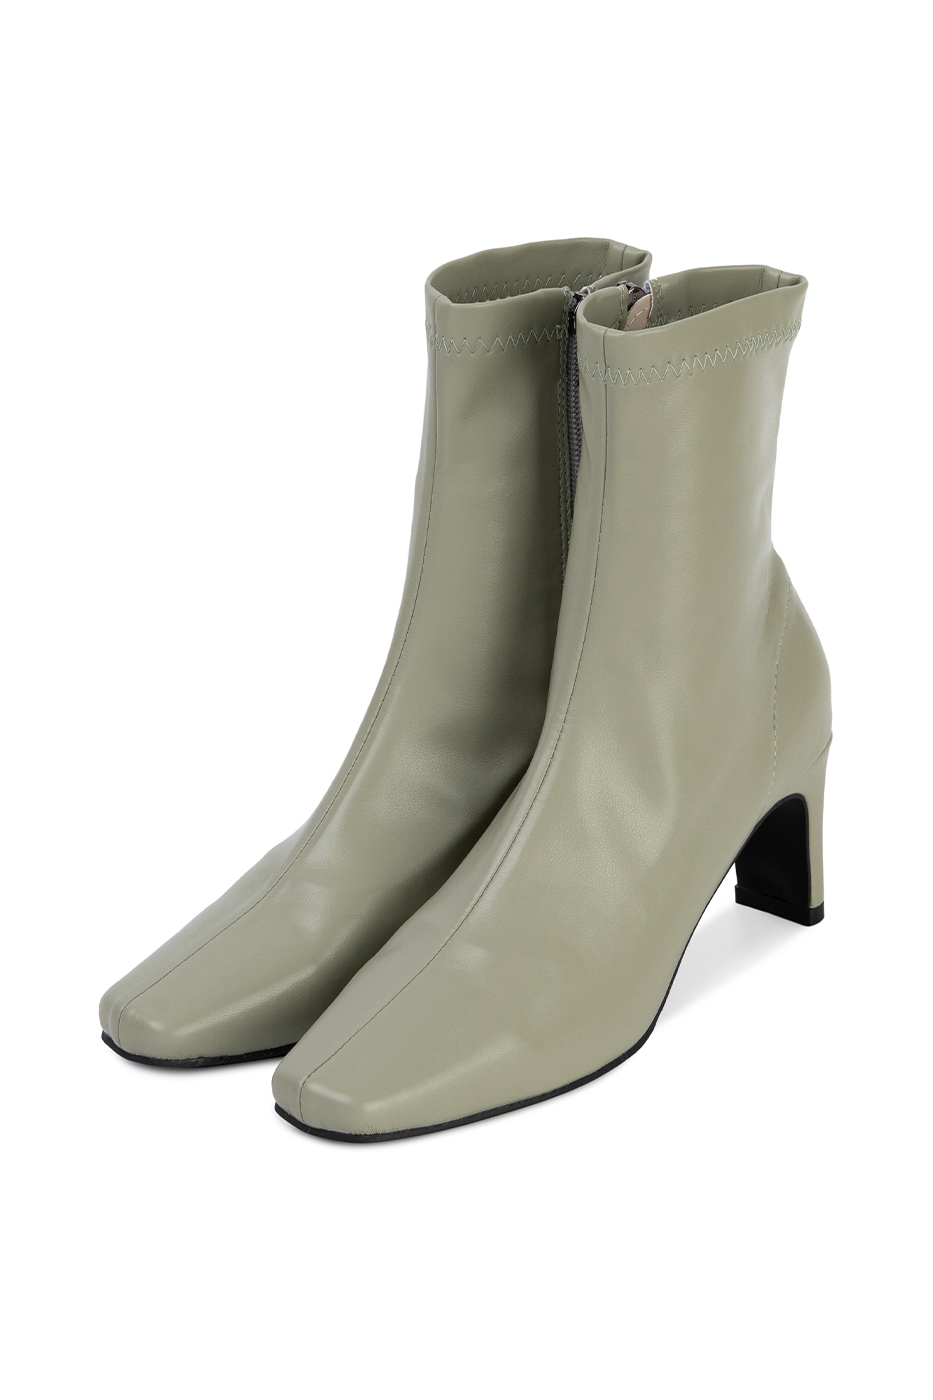 Muse high heel ankle boots